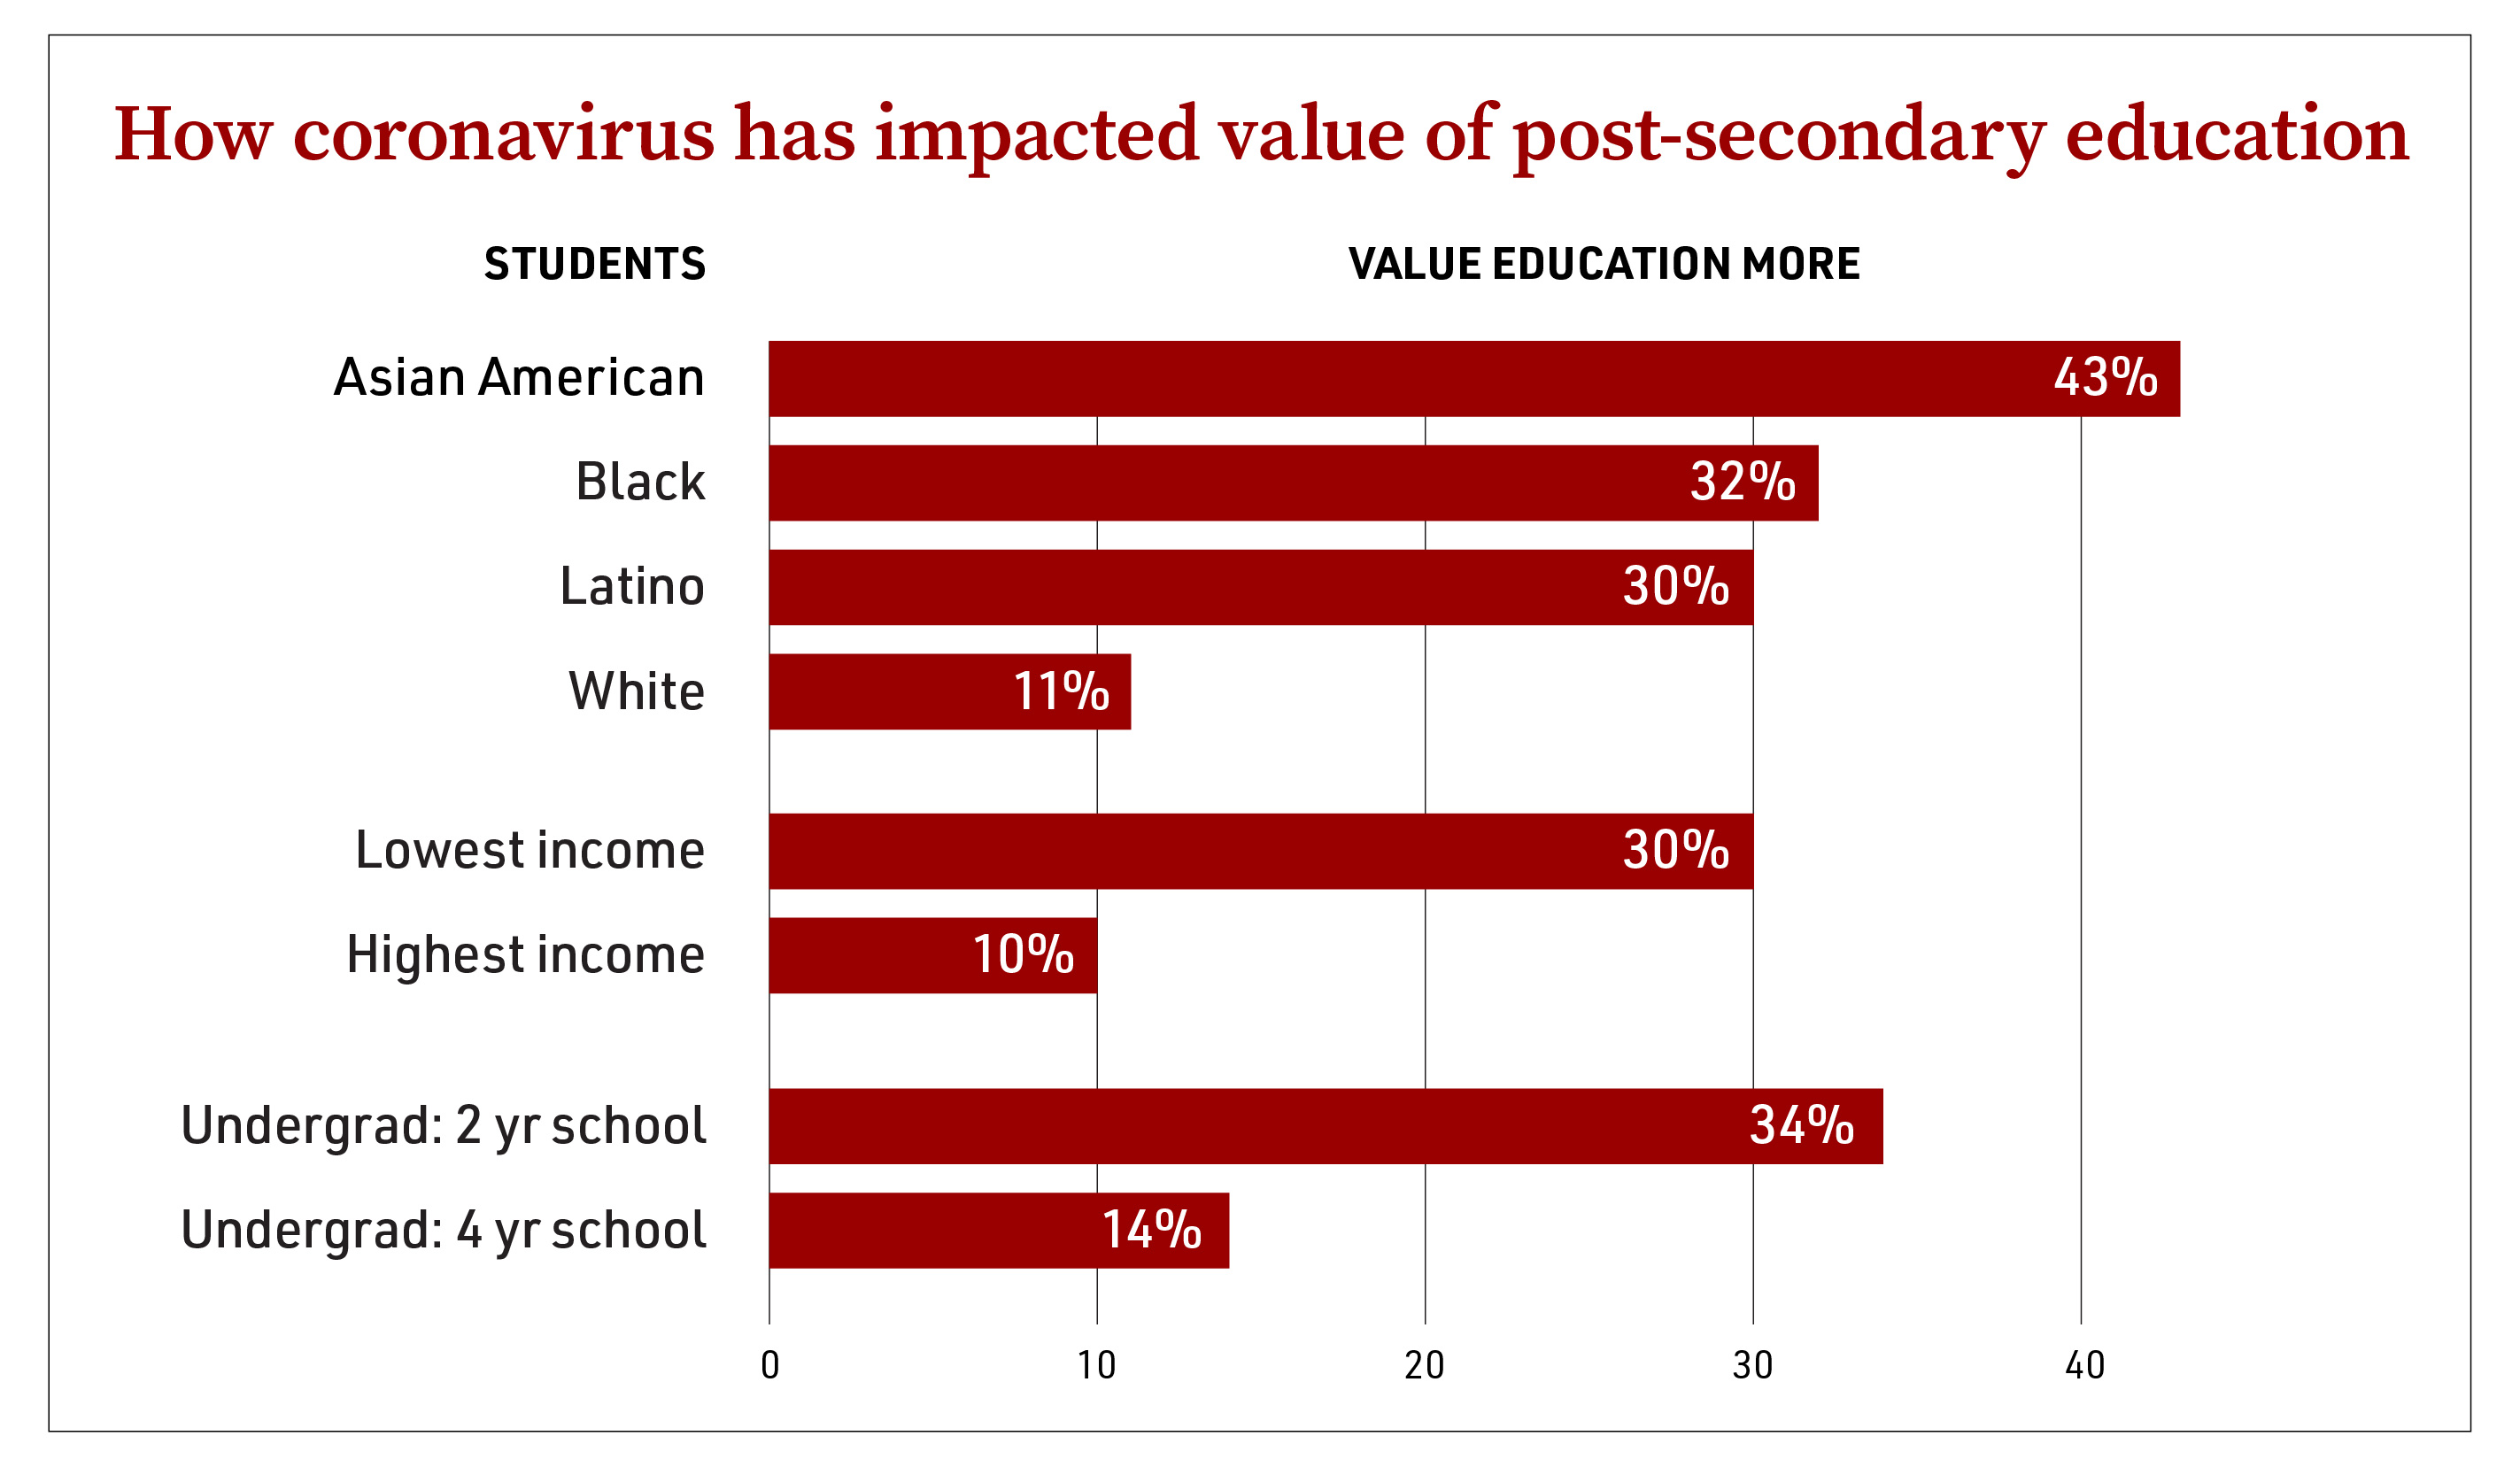 Chart comparing COVID-19's impact on perceived value of post-secondary education for students of different racial, income and educational levels.